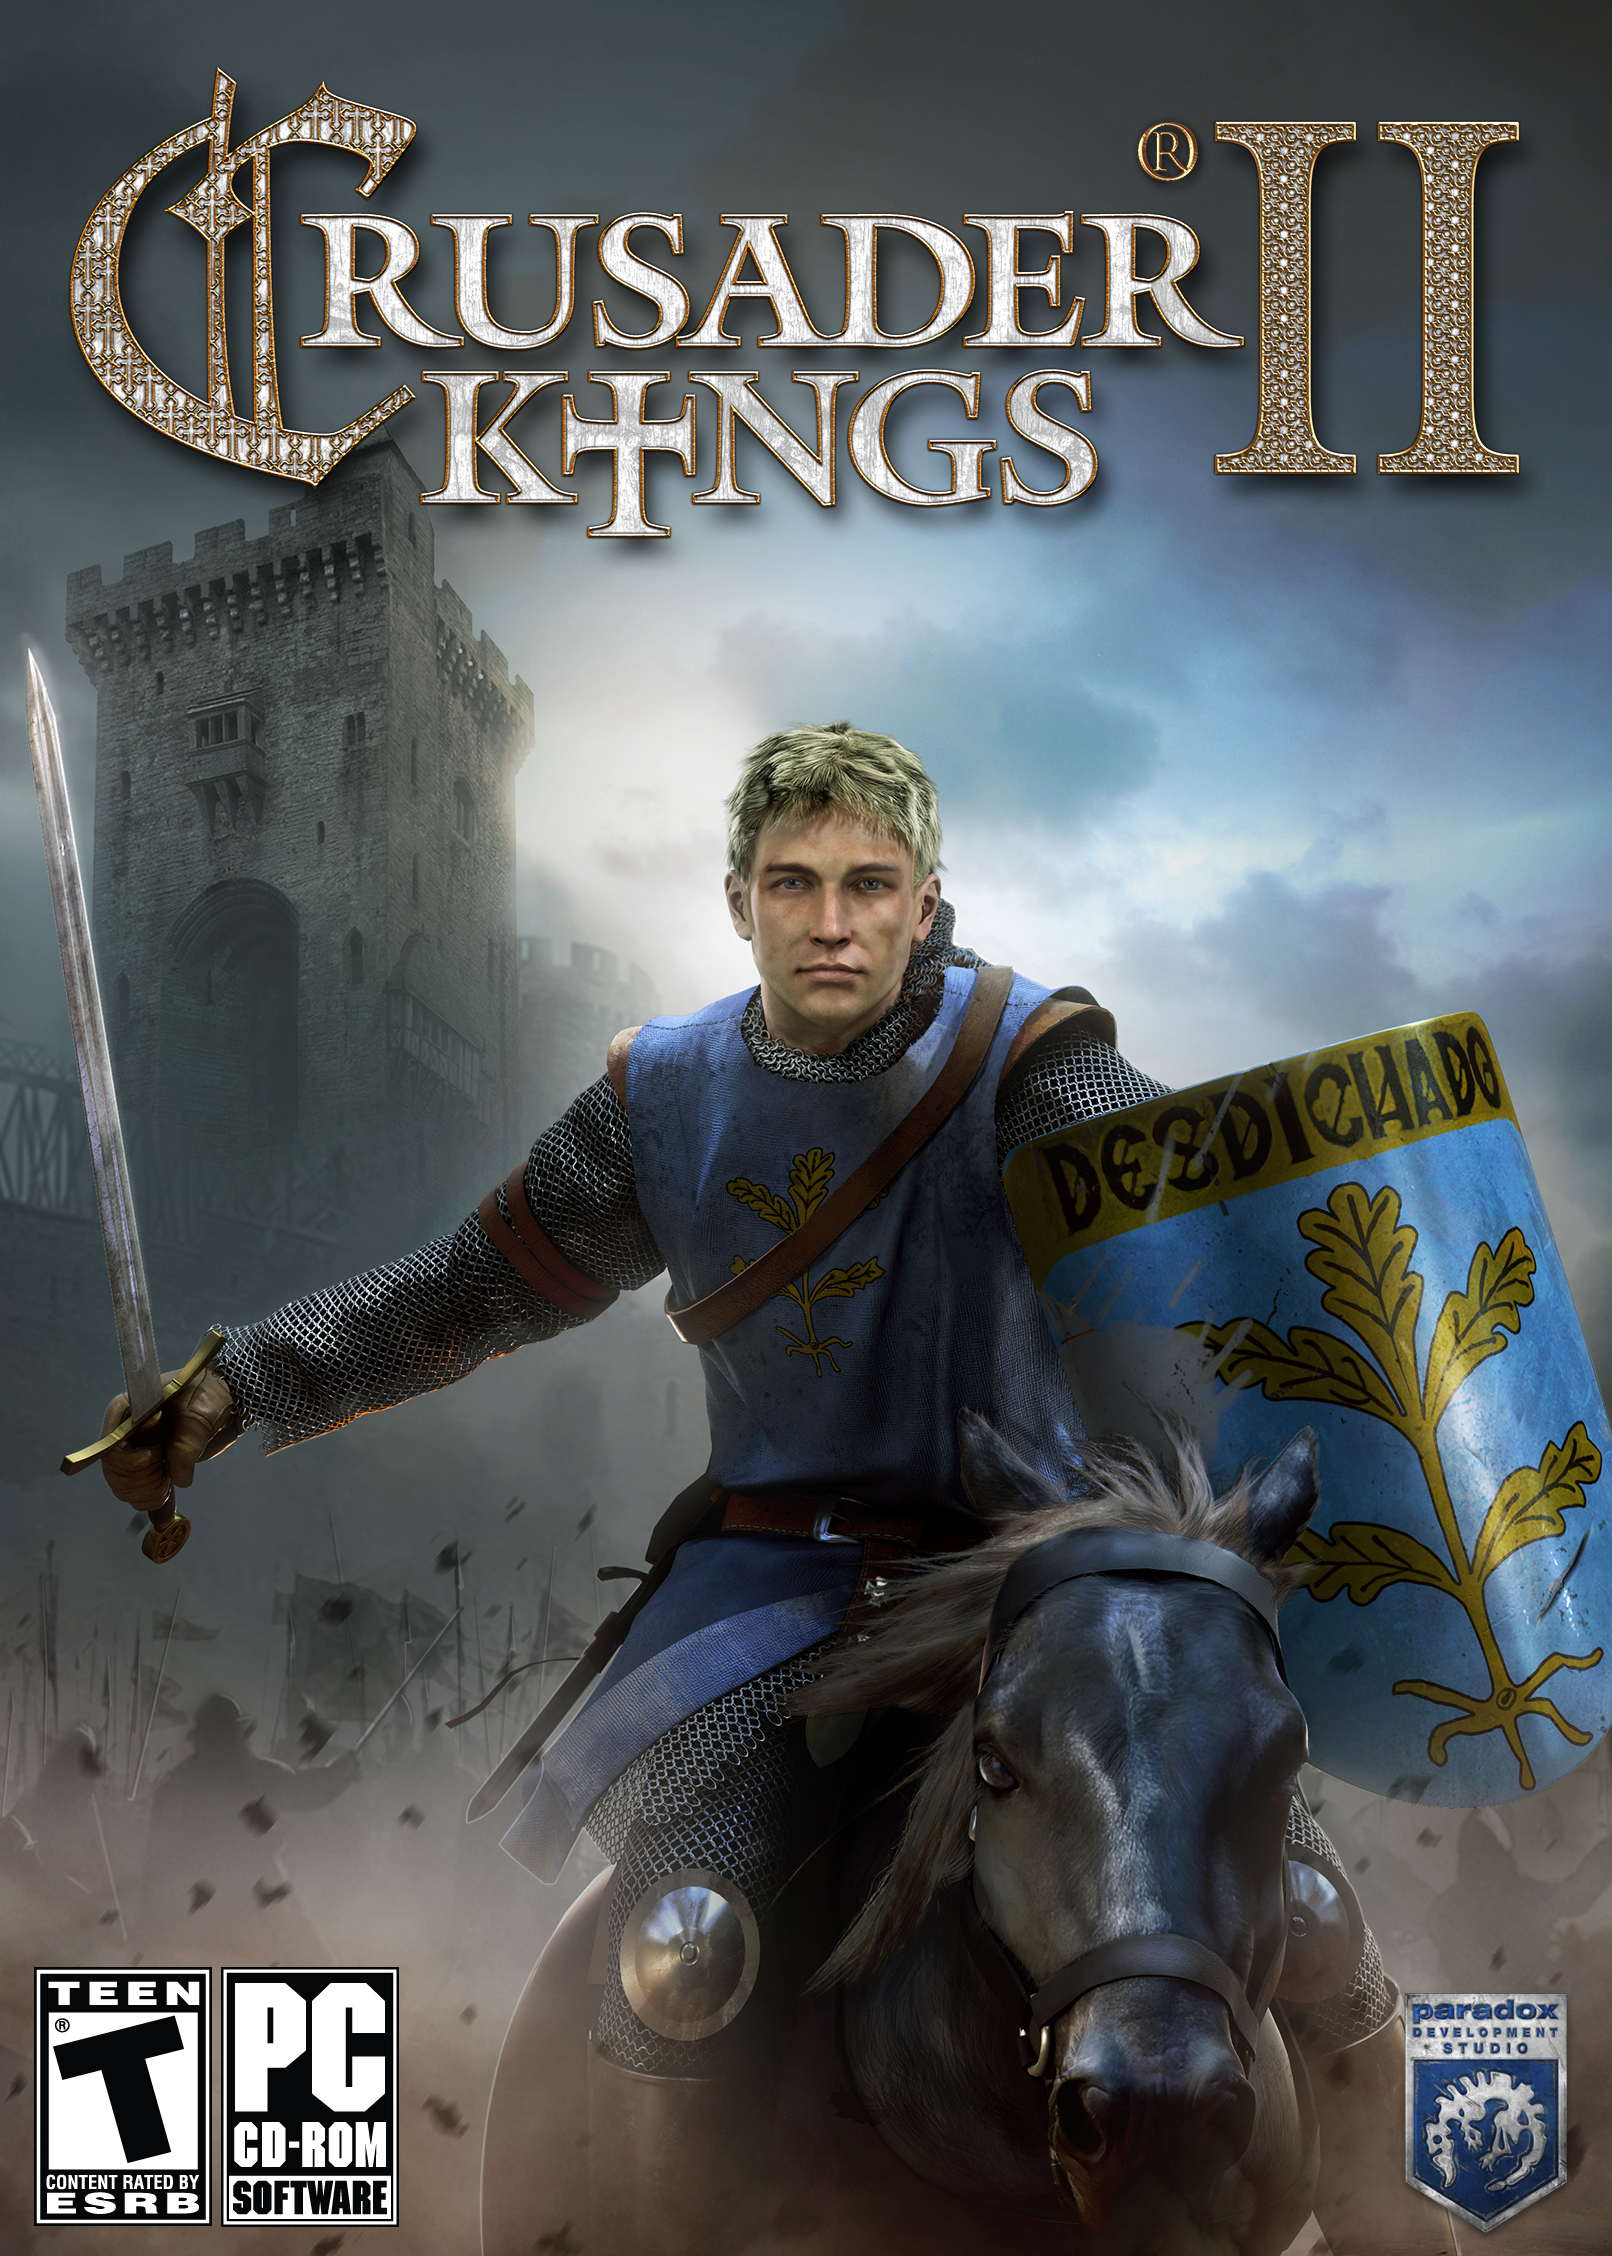 Two Kings Brings The Action In The Spongebob Wars And: Crusader Kings II Windows, Mac Game